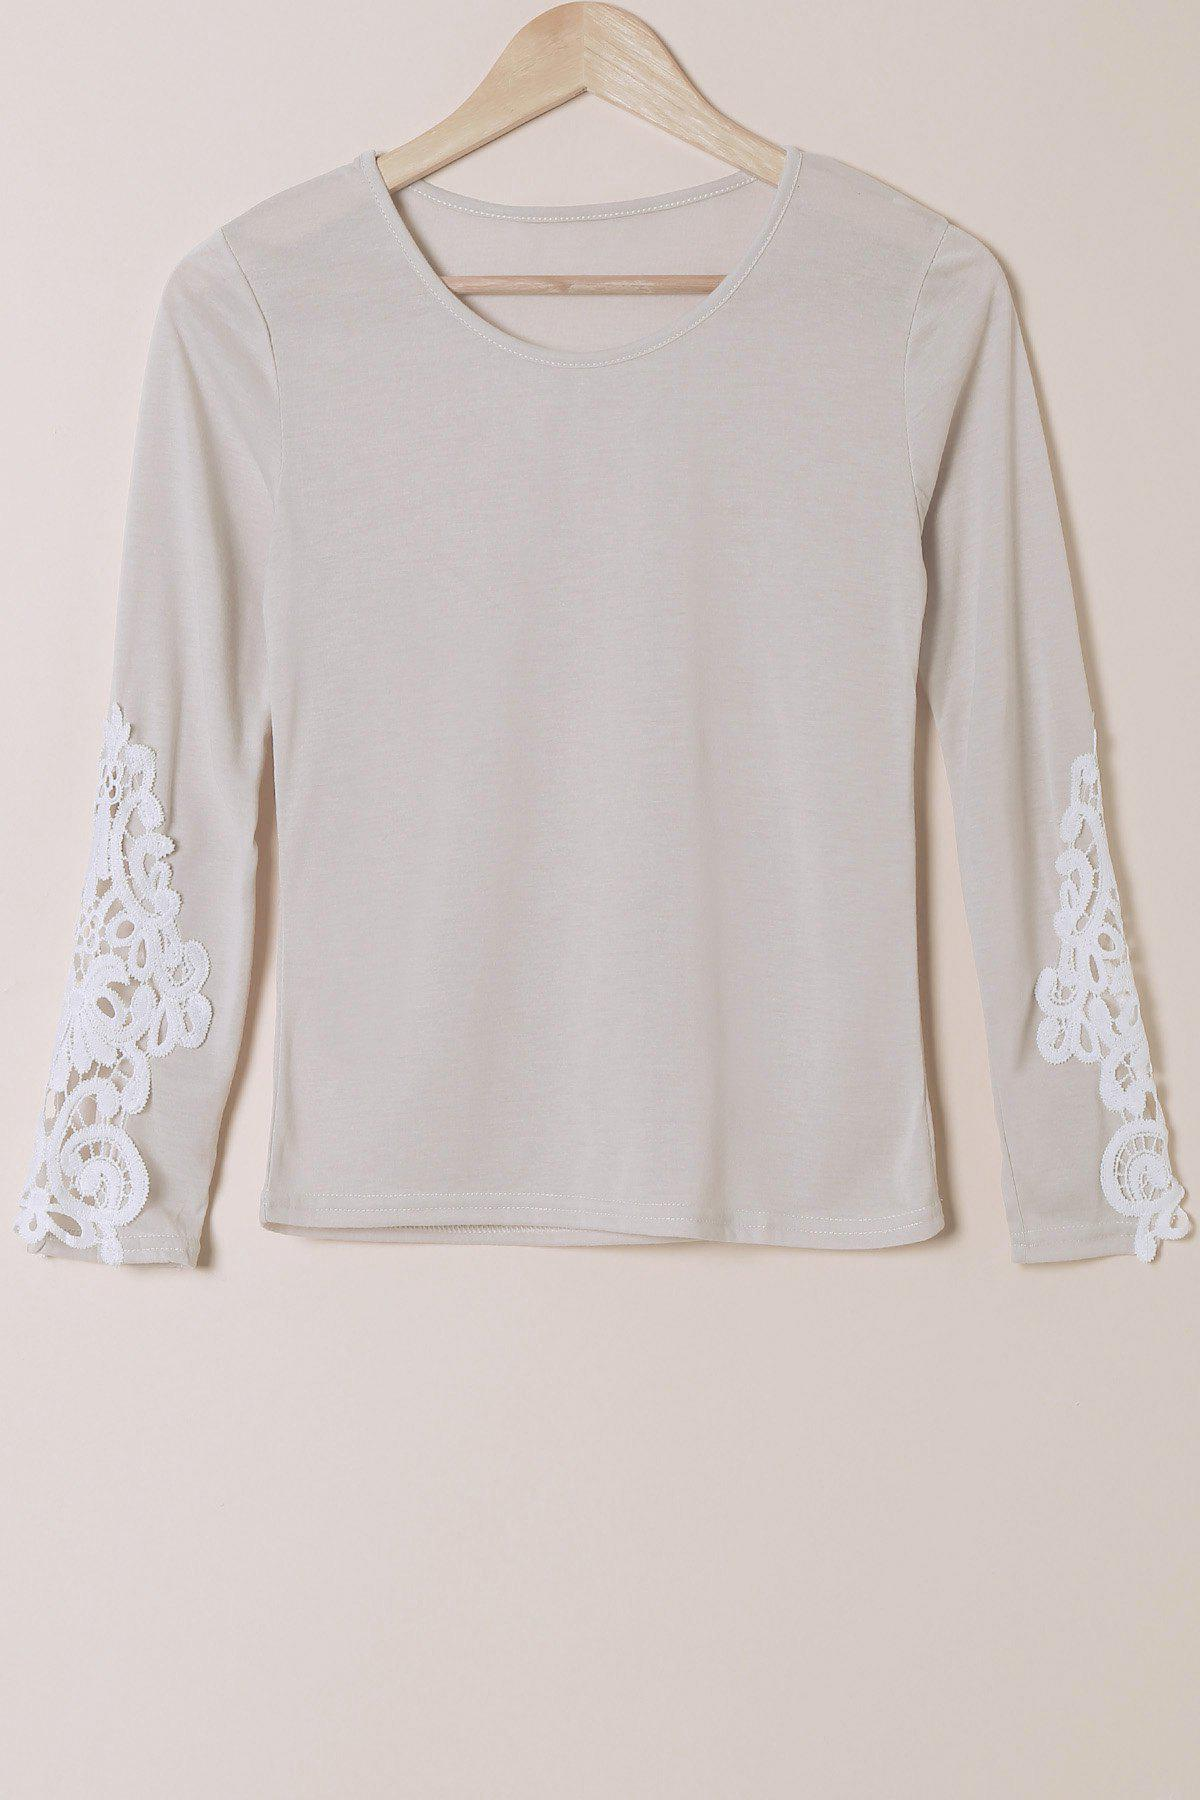 Stylish Scoop Neck Long Sleeve Slimming Hollow Out Women's T-Shirt - GRAY S